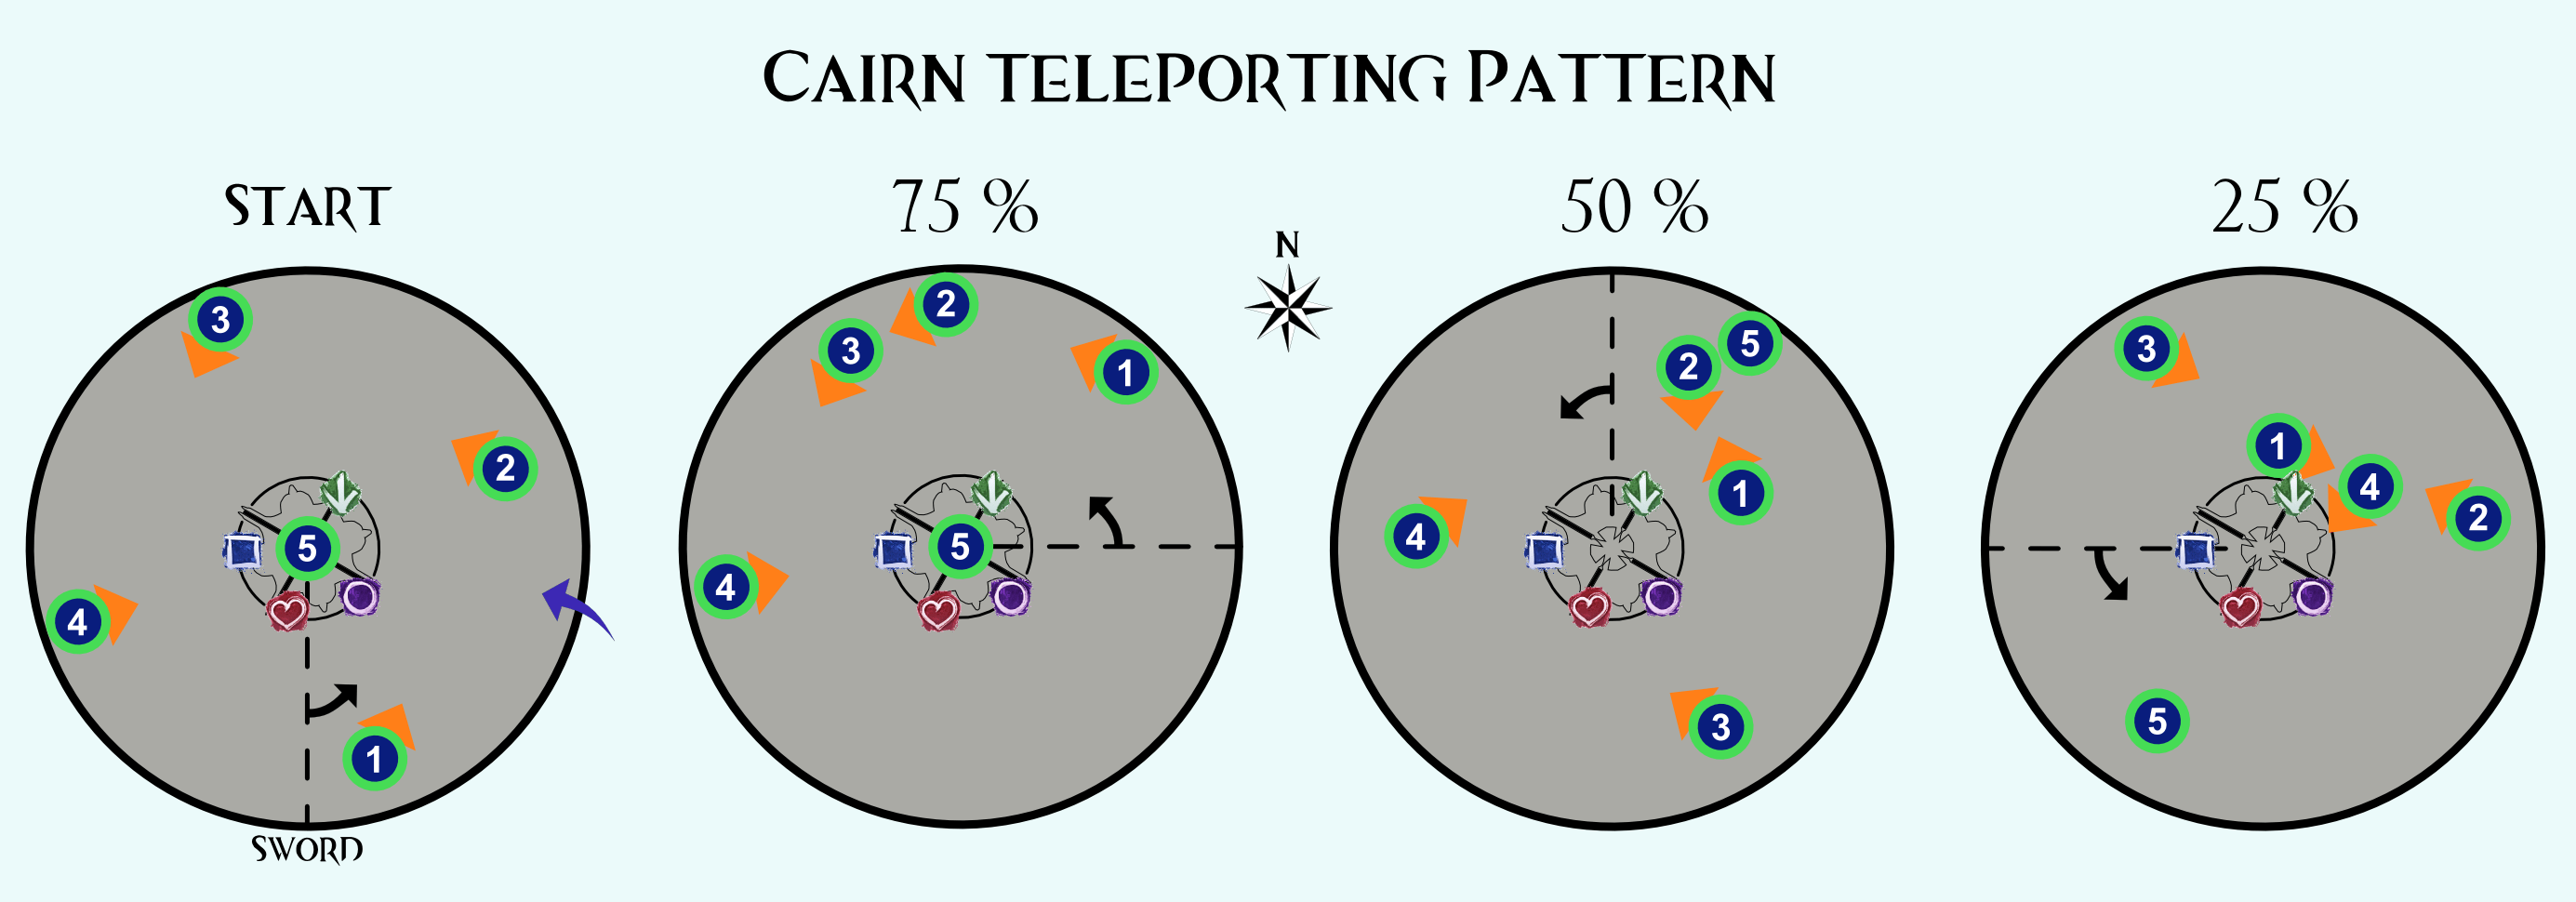 Cairn Teleporting Pattern.png